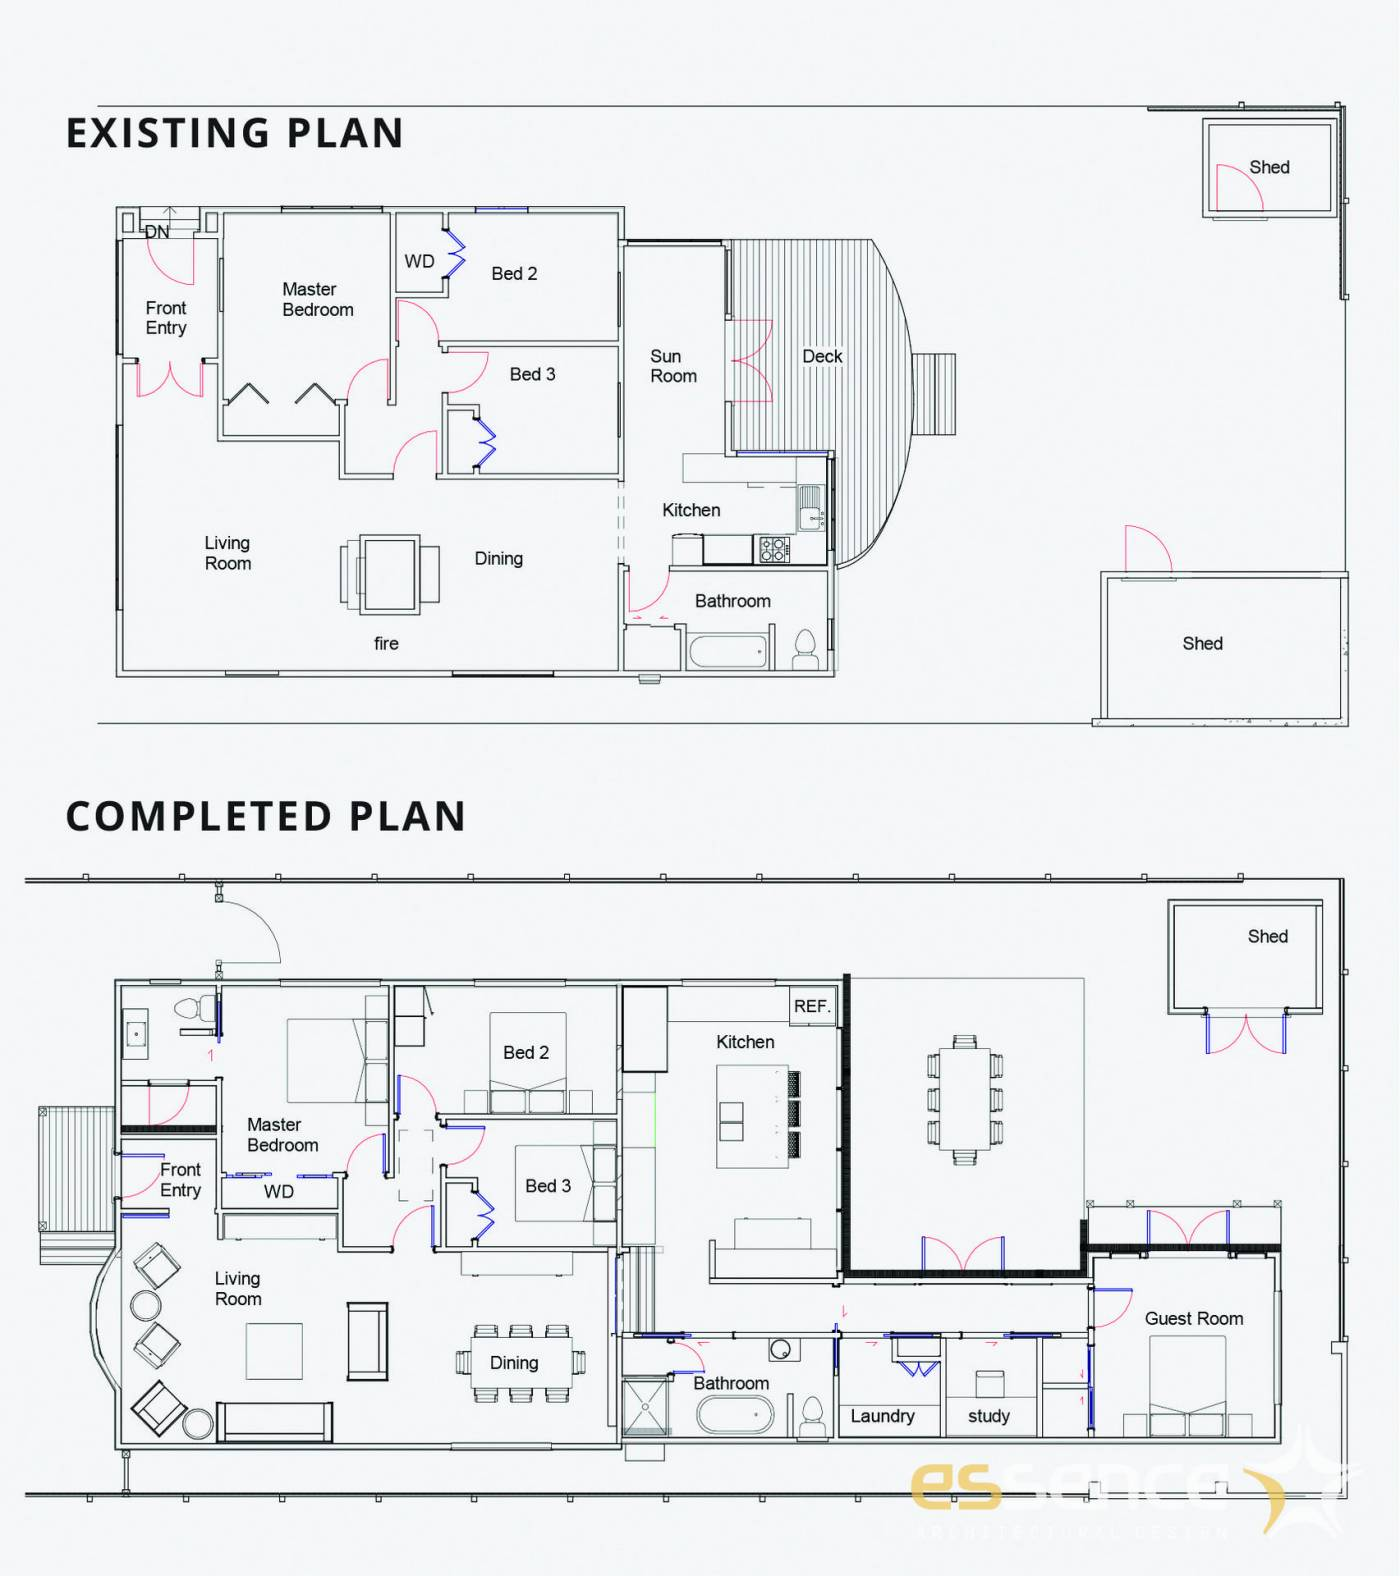 Existing and completed plans